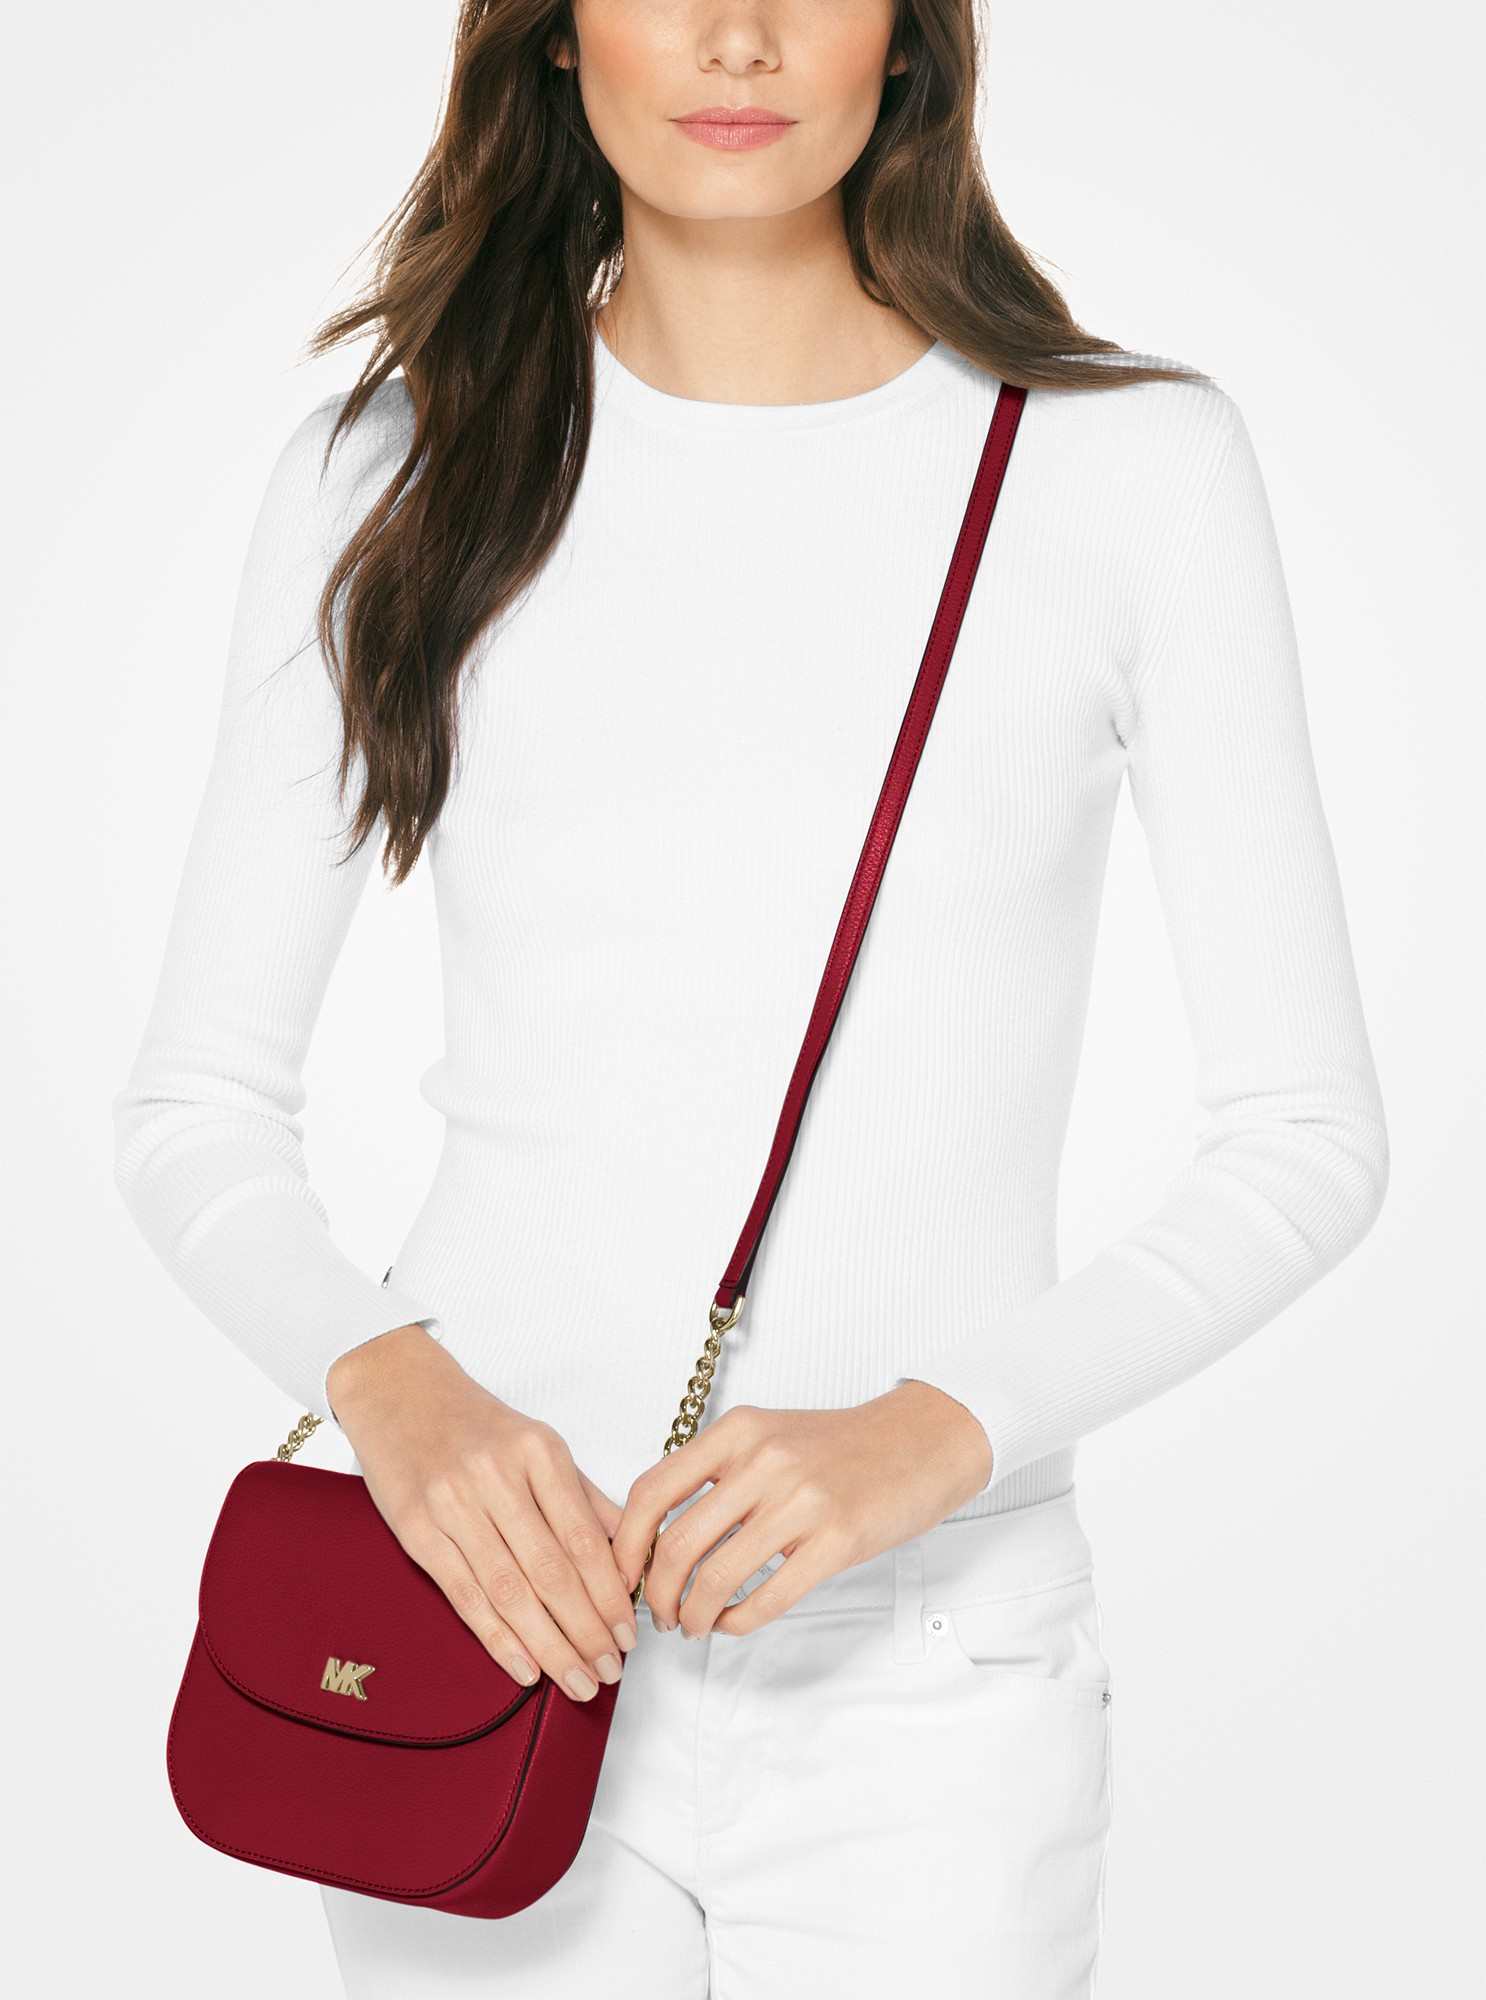 7bb0a43c3453 Michael Kors Mott Pebbled Leather Dome Crossbody - Maroon in 2019 ...